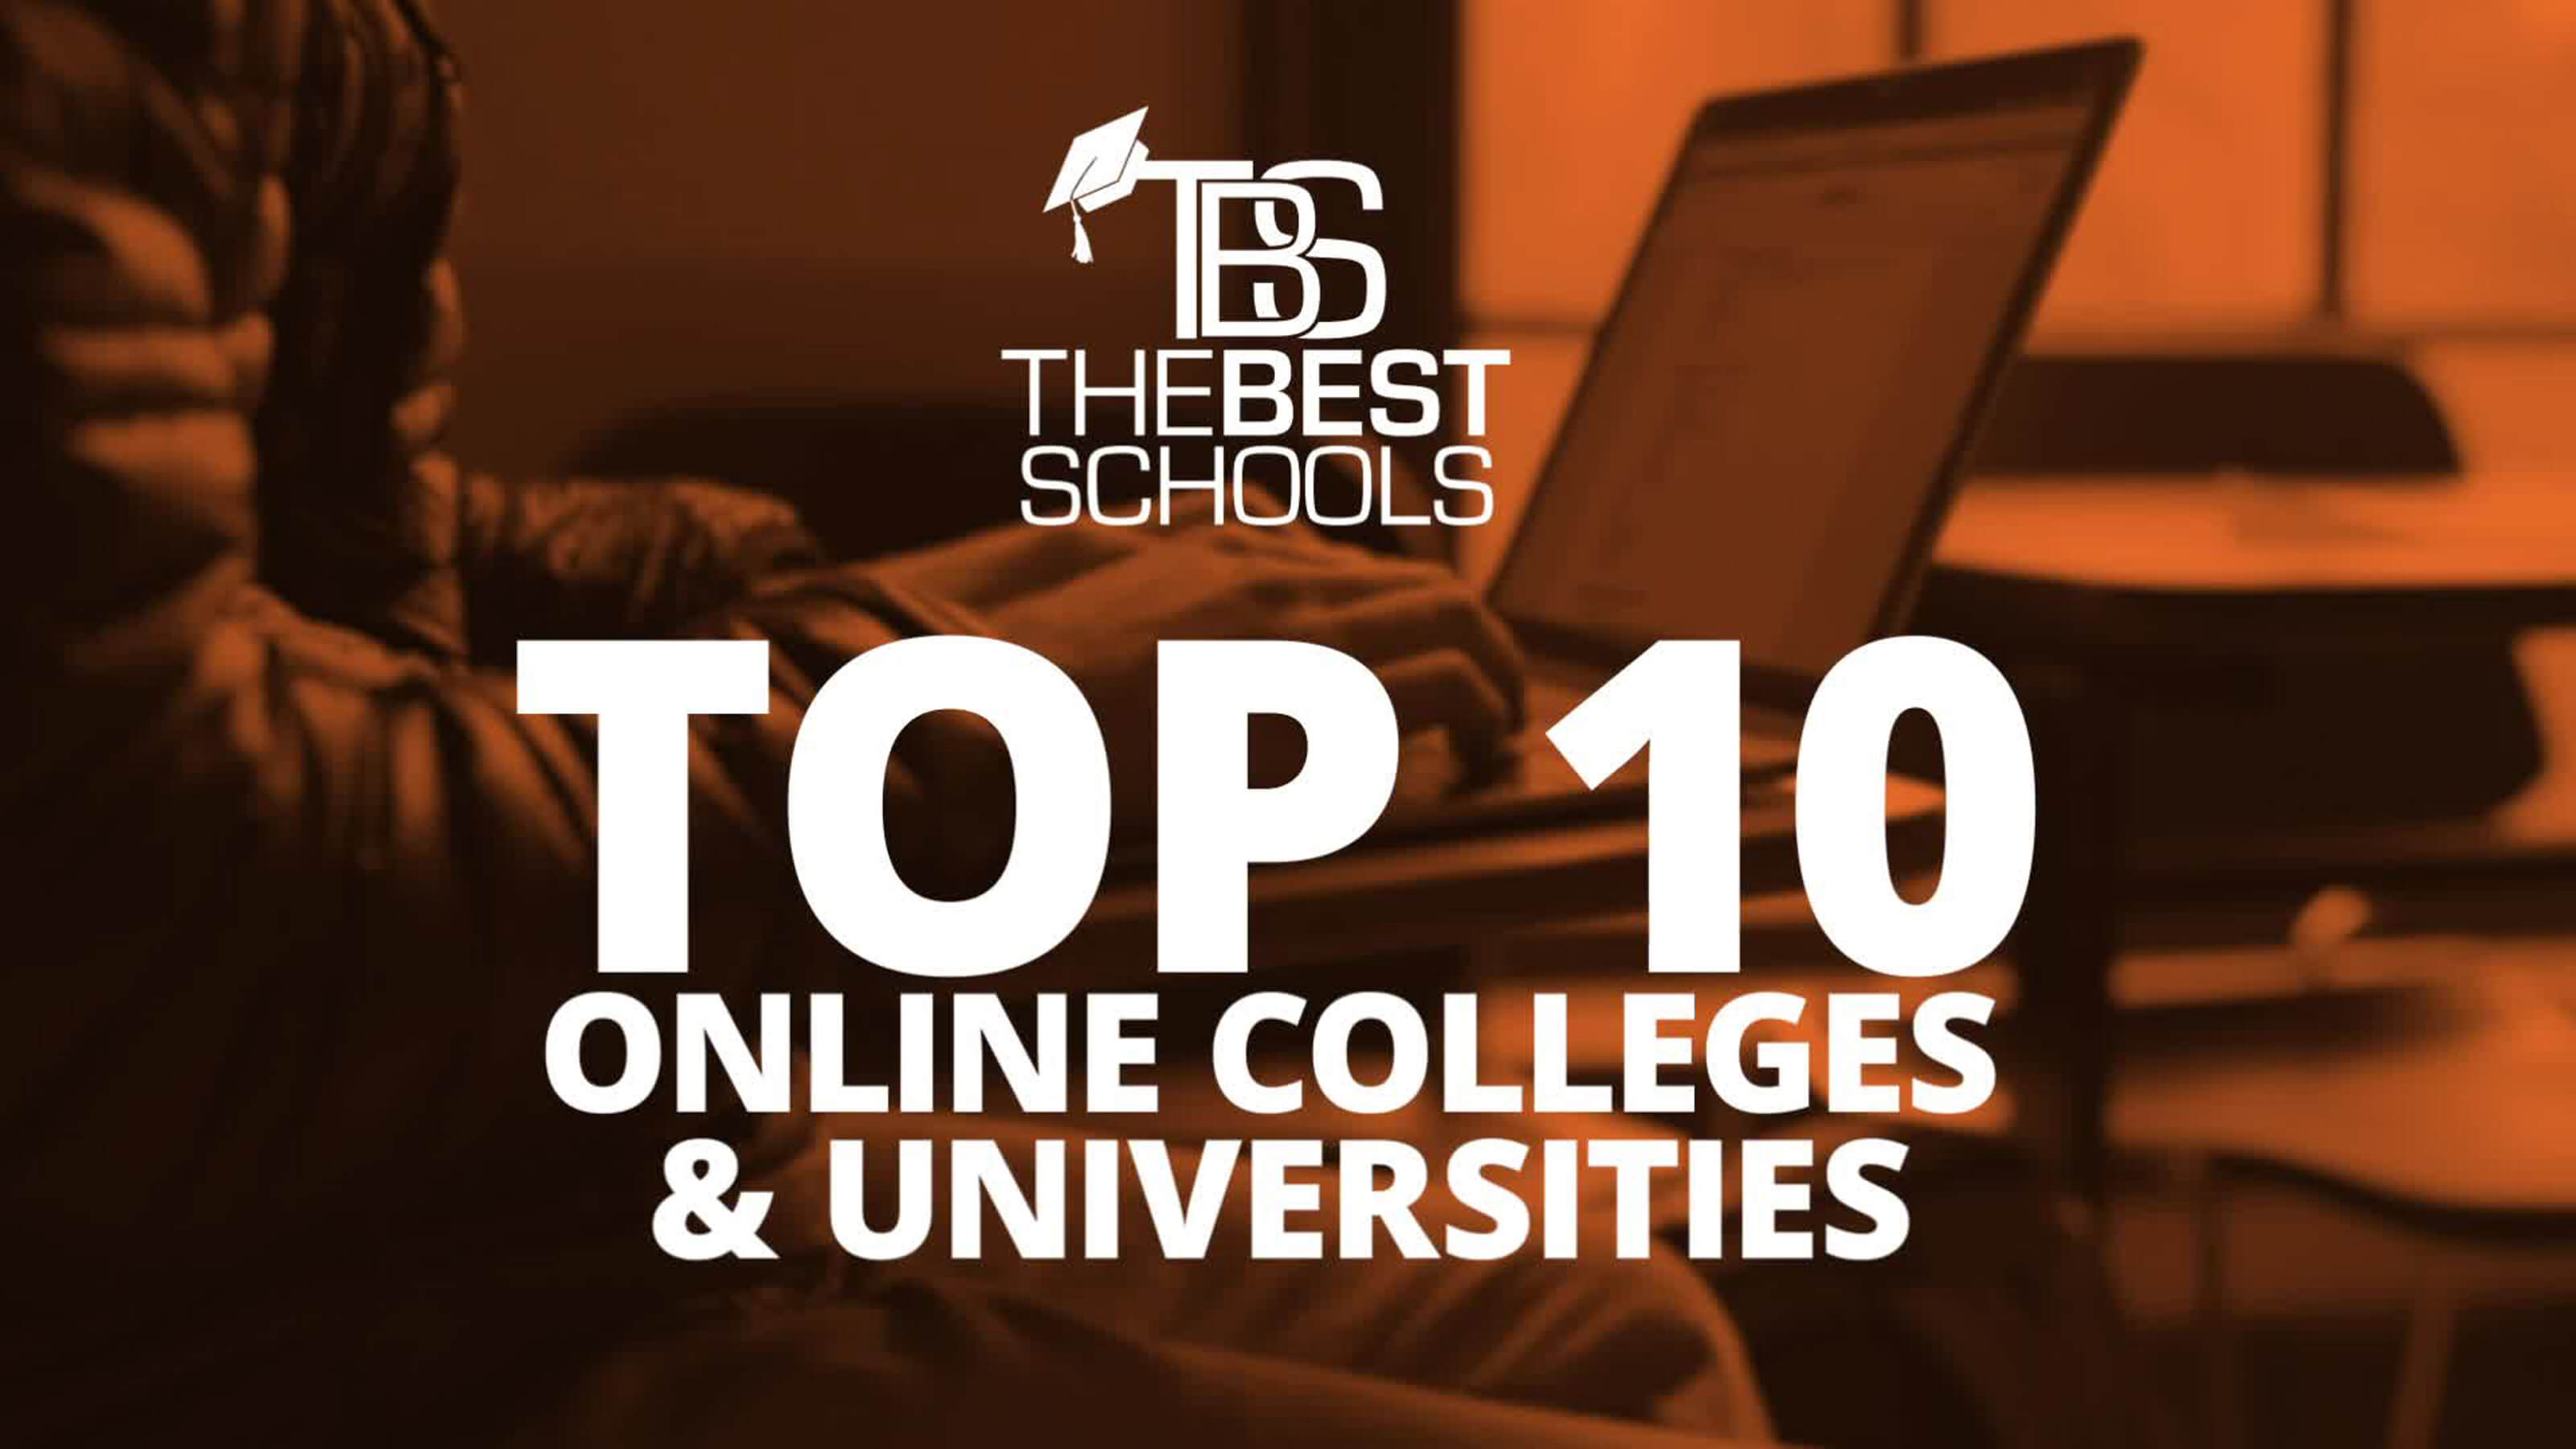 Top 10 Best Colleges For Students With >> Video Top 10 Online Colleges Amp Universities 2019 Countdown